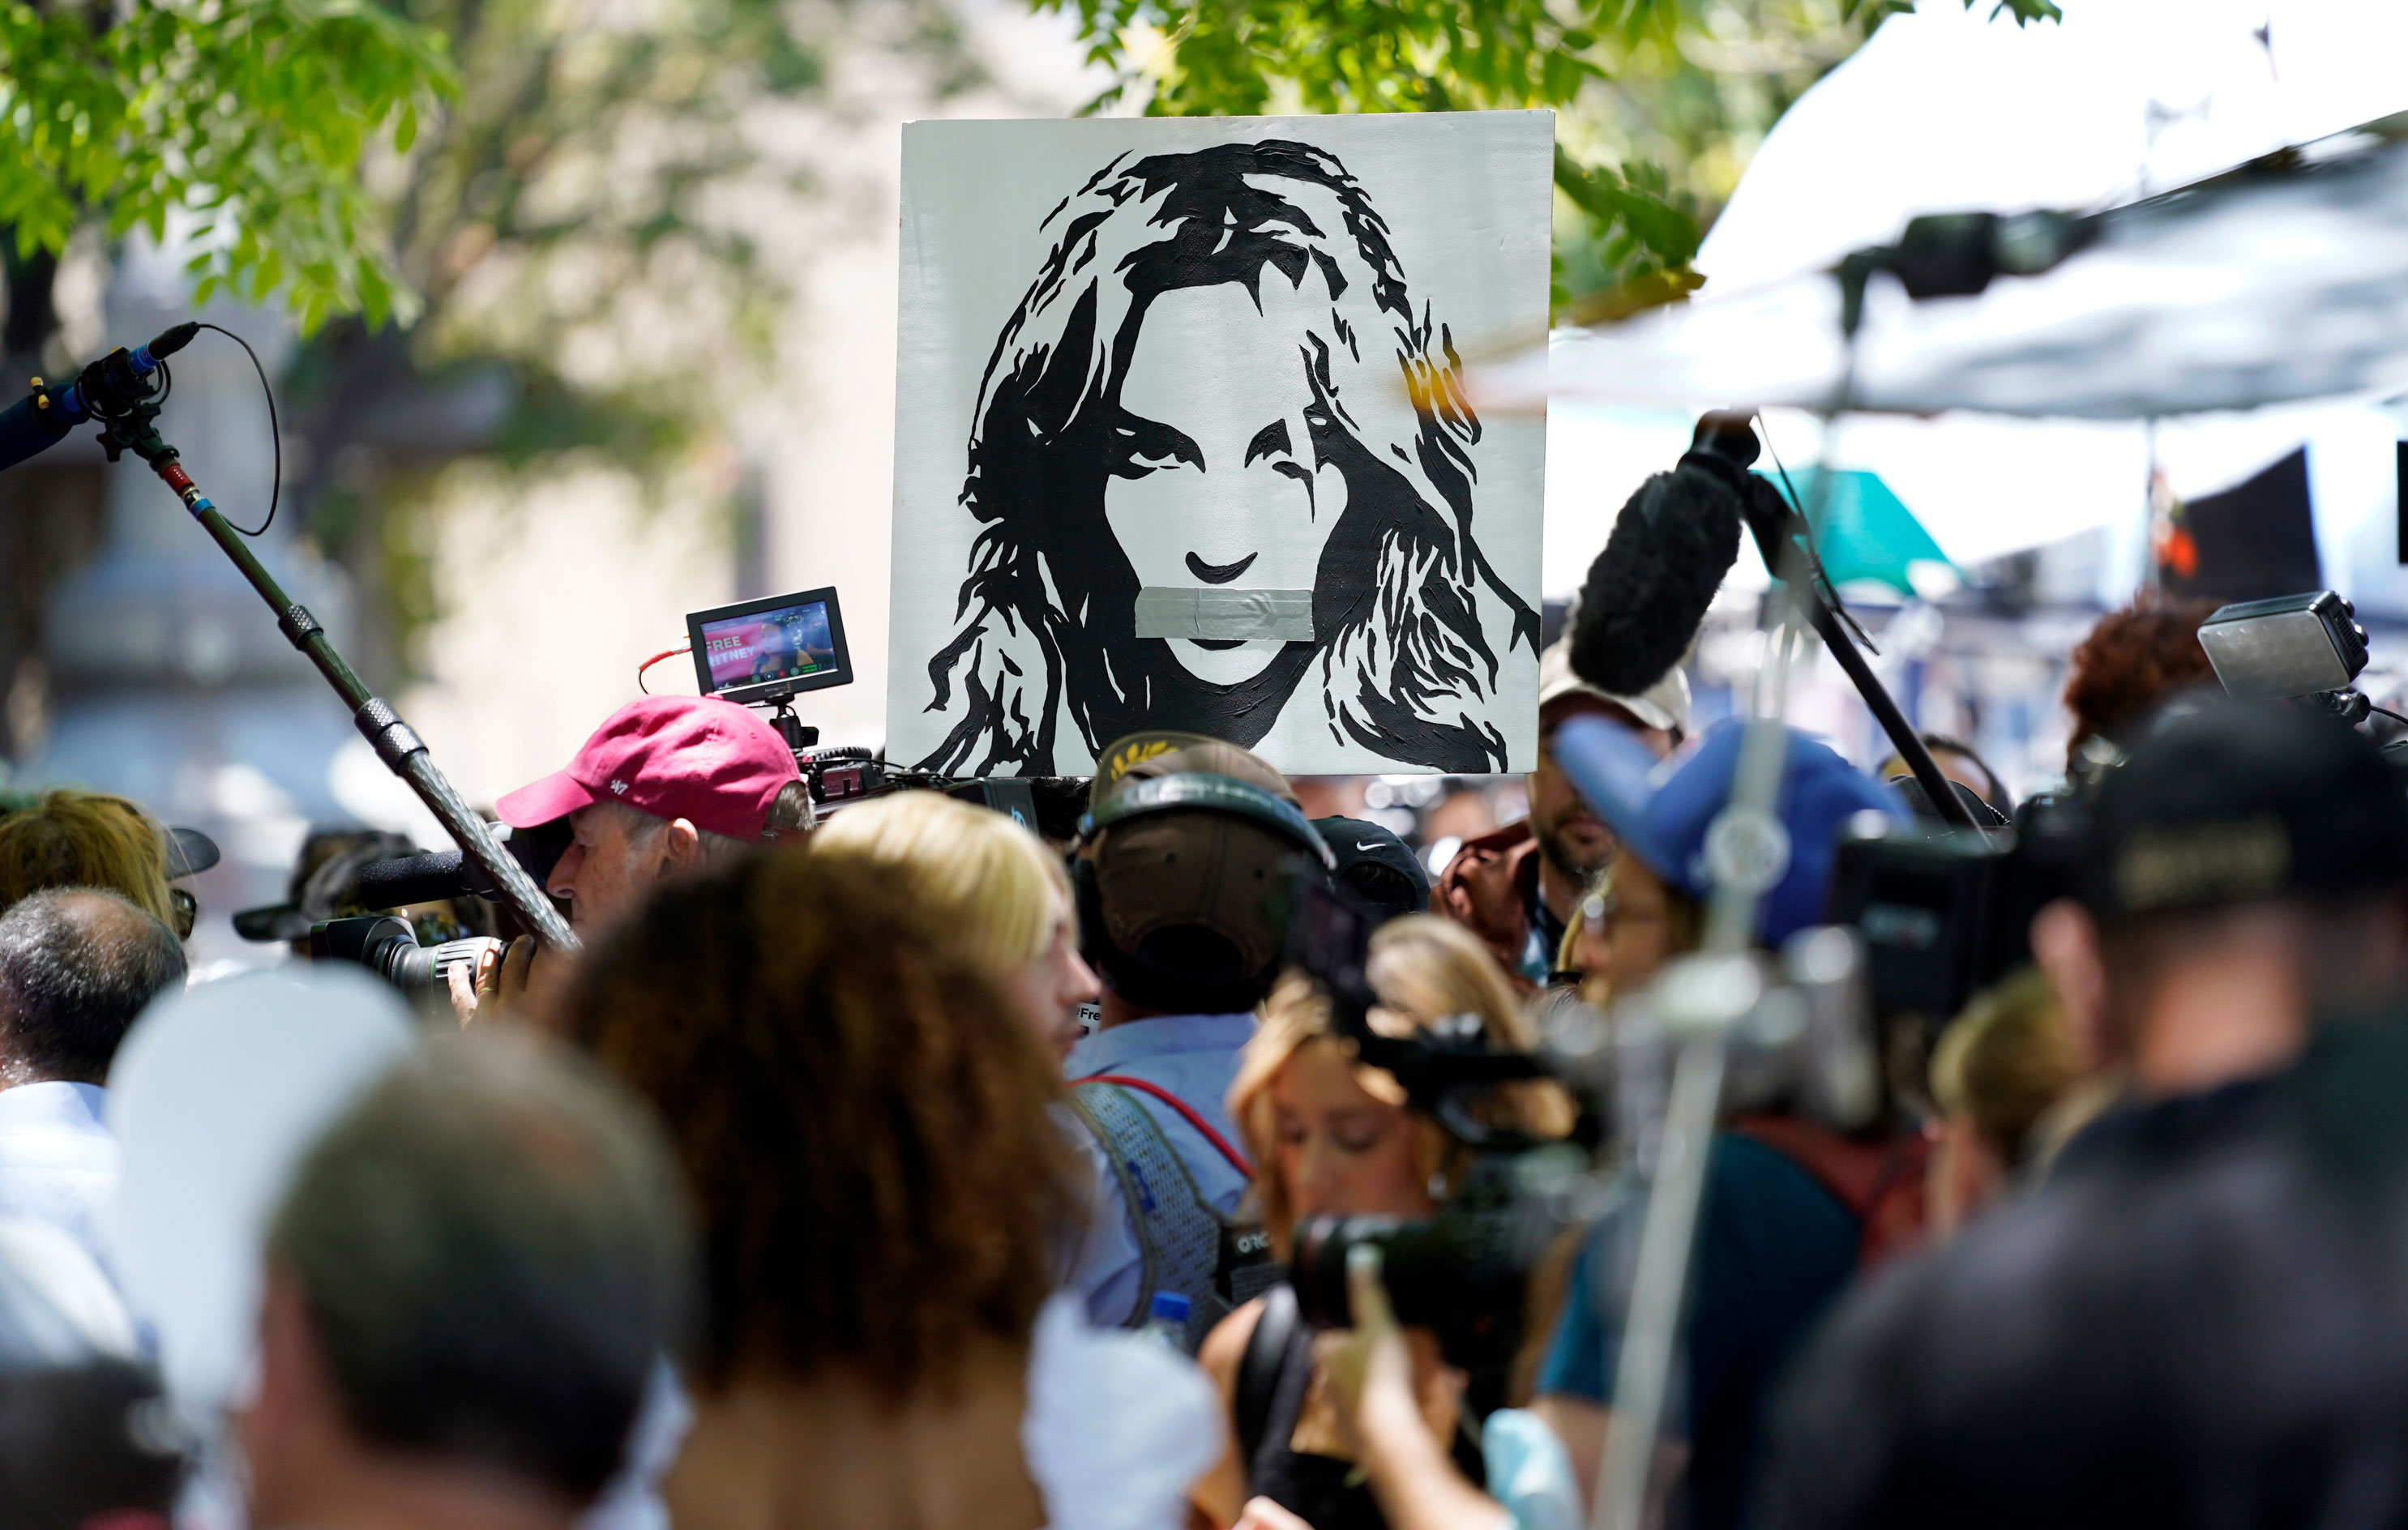 A portrait of Britney Spears looms over supporters and media members outside a court hearing concerning the pop singer's conservatorship at the Stanley Mosk Courthouse, on Wednesday, June 23, in Los Angeles.